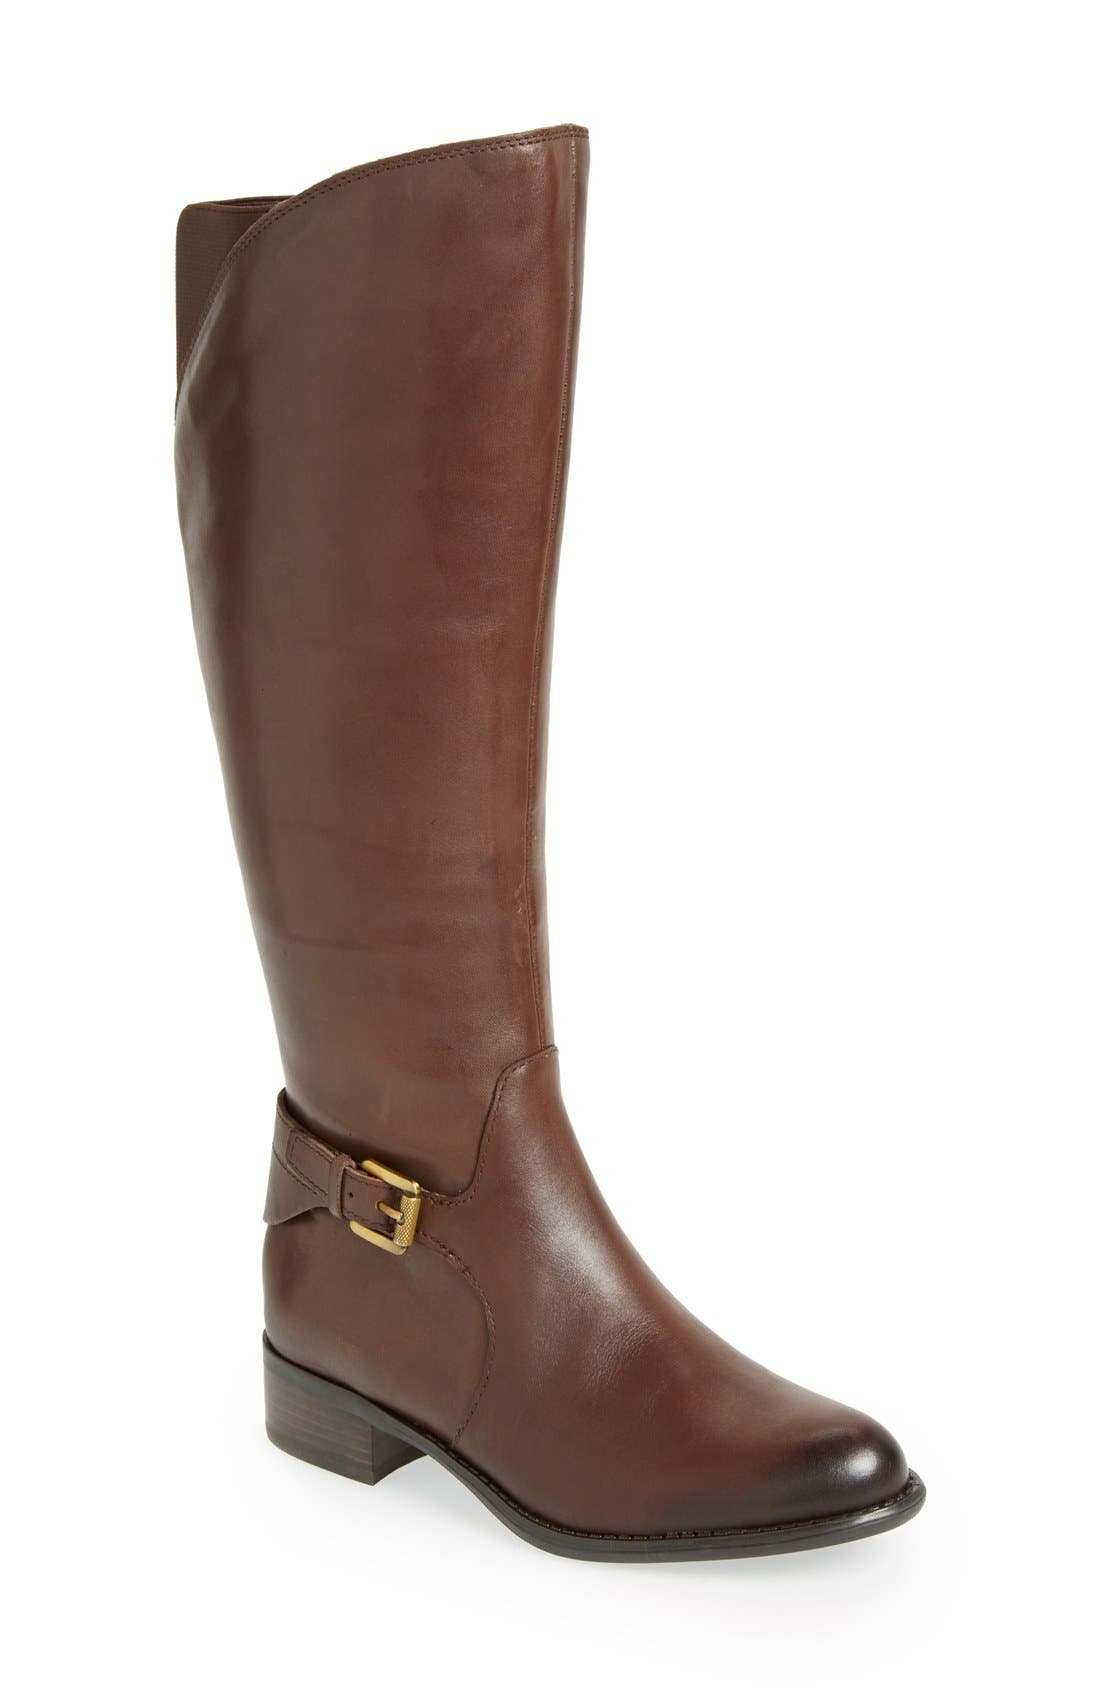 Alternate Image 1 Selected - Franco Sarto 'Craze' Knee High Leather Boot (Women)